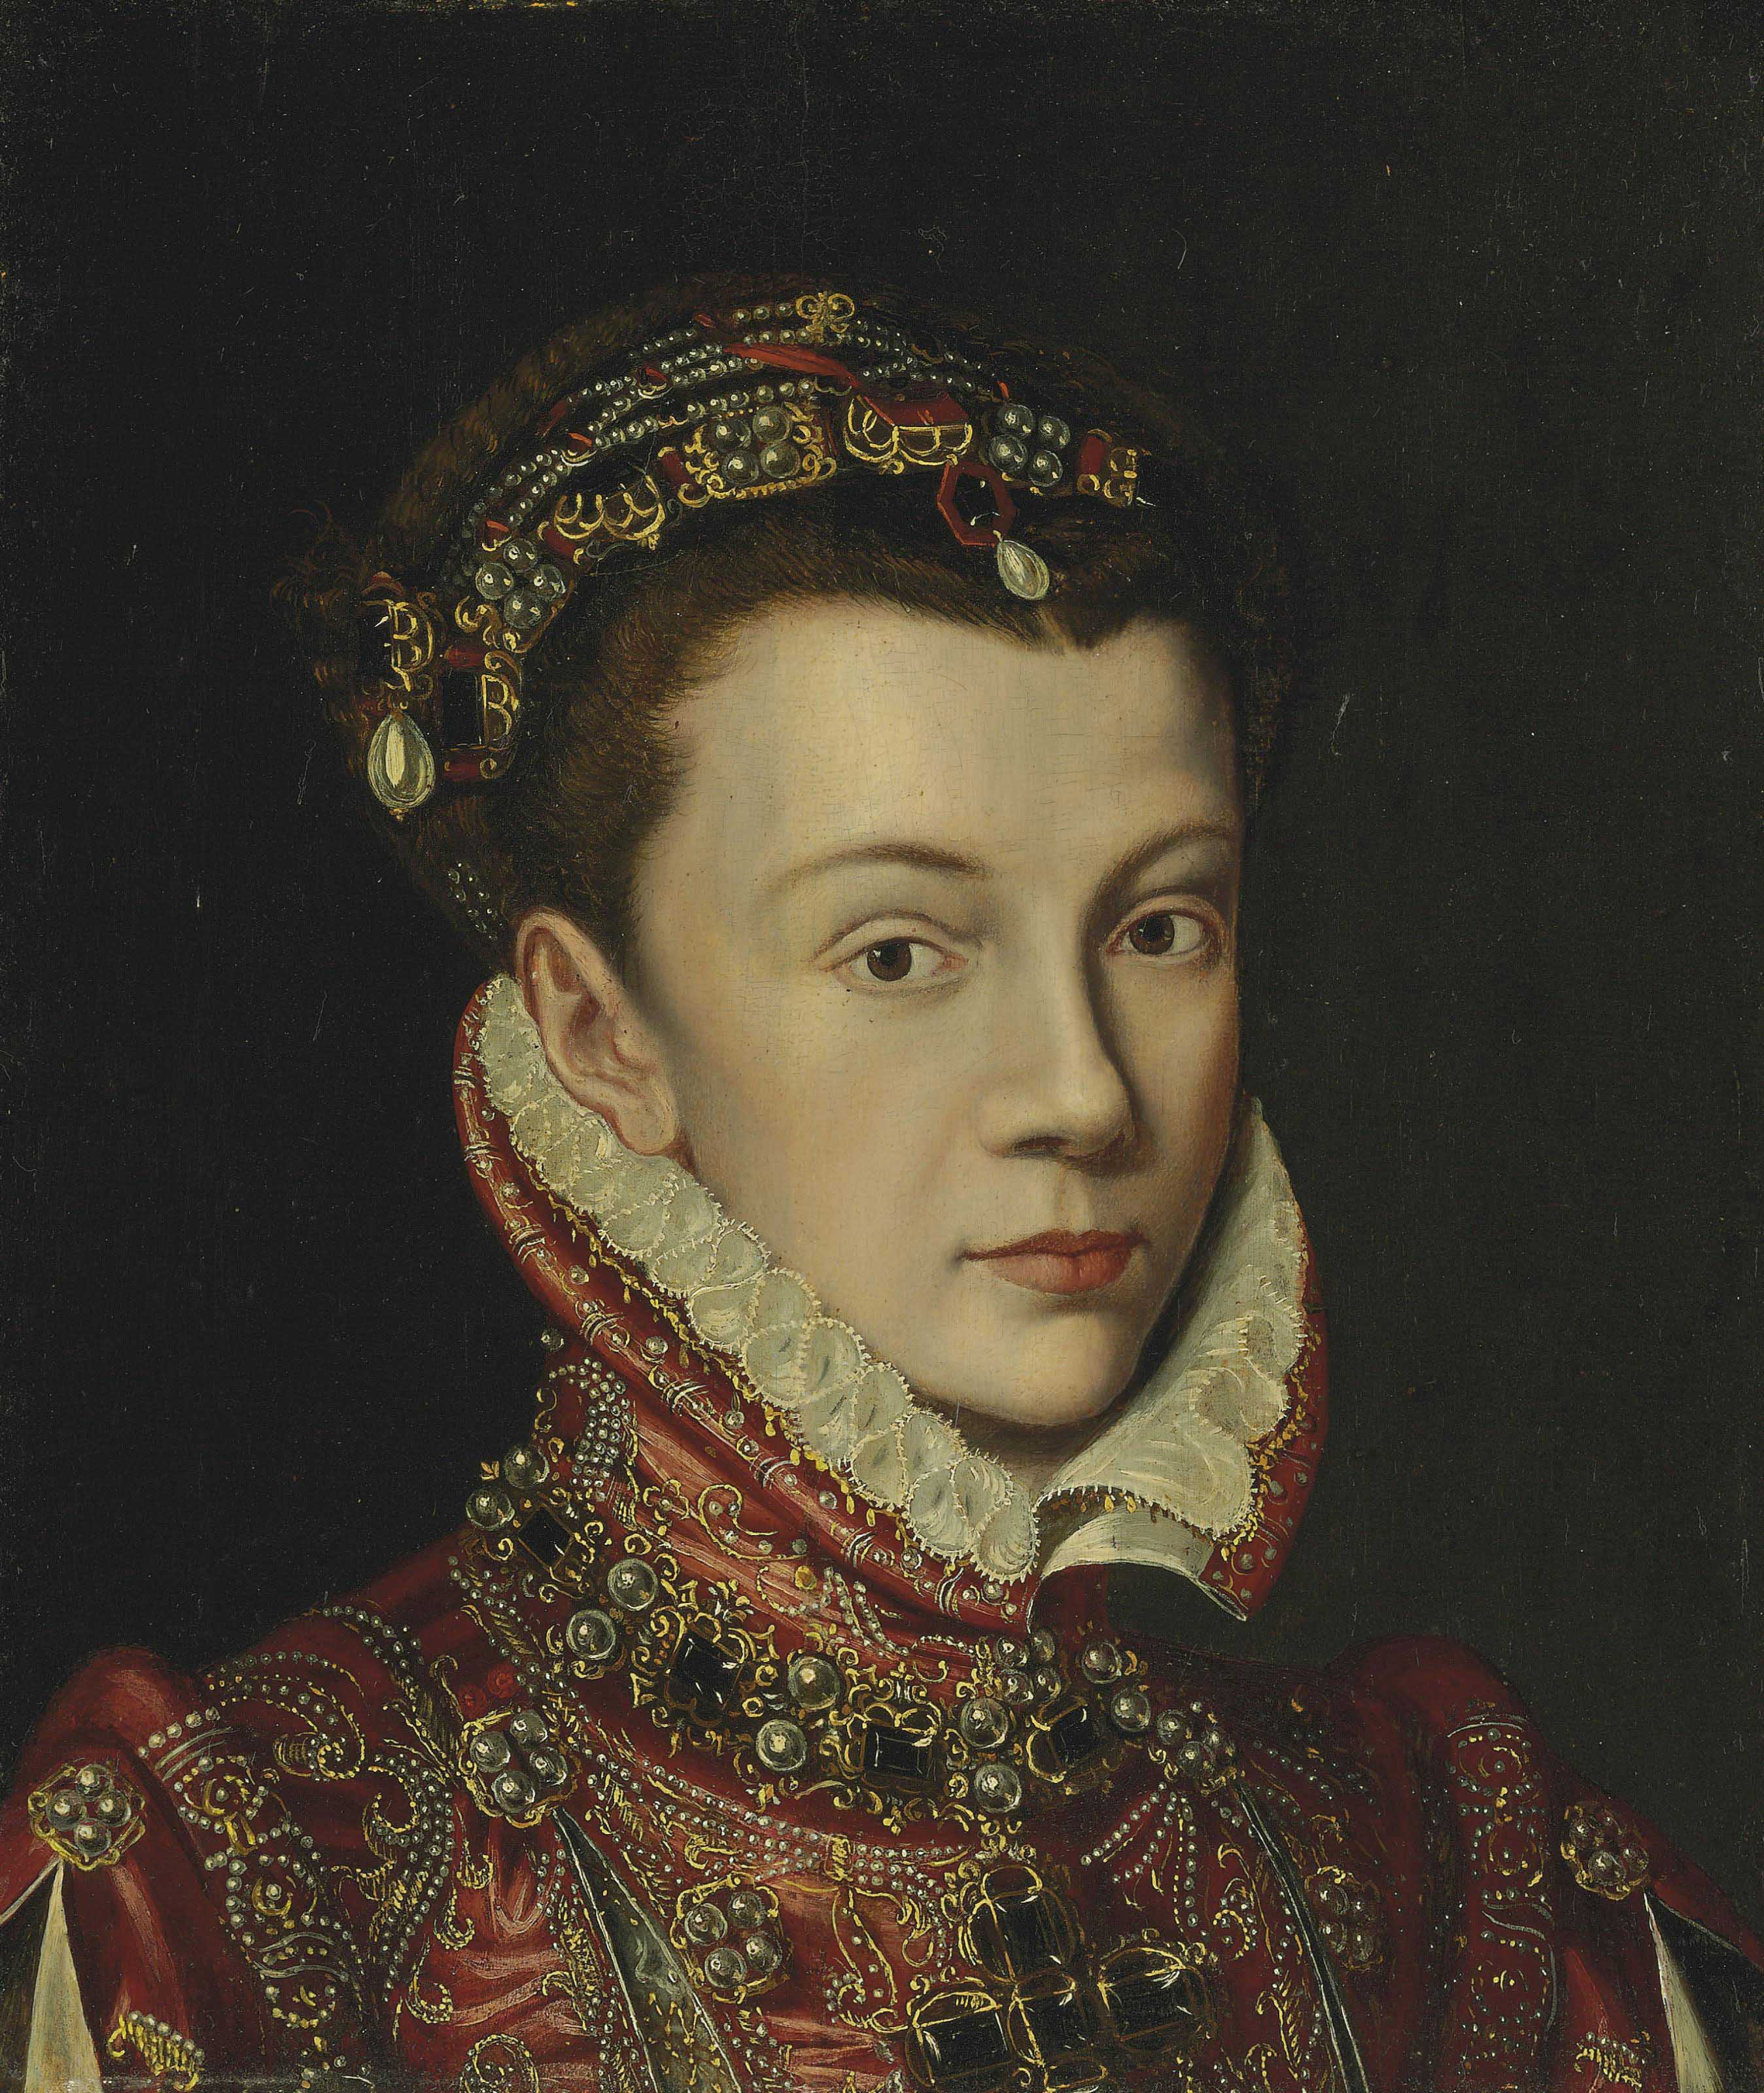 Portrait of Elizabeth of Valois, Queen of Spain, bust-length, wearing a jewelled headdress and a red embroidered dress